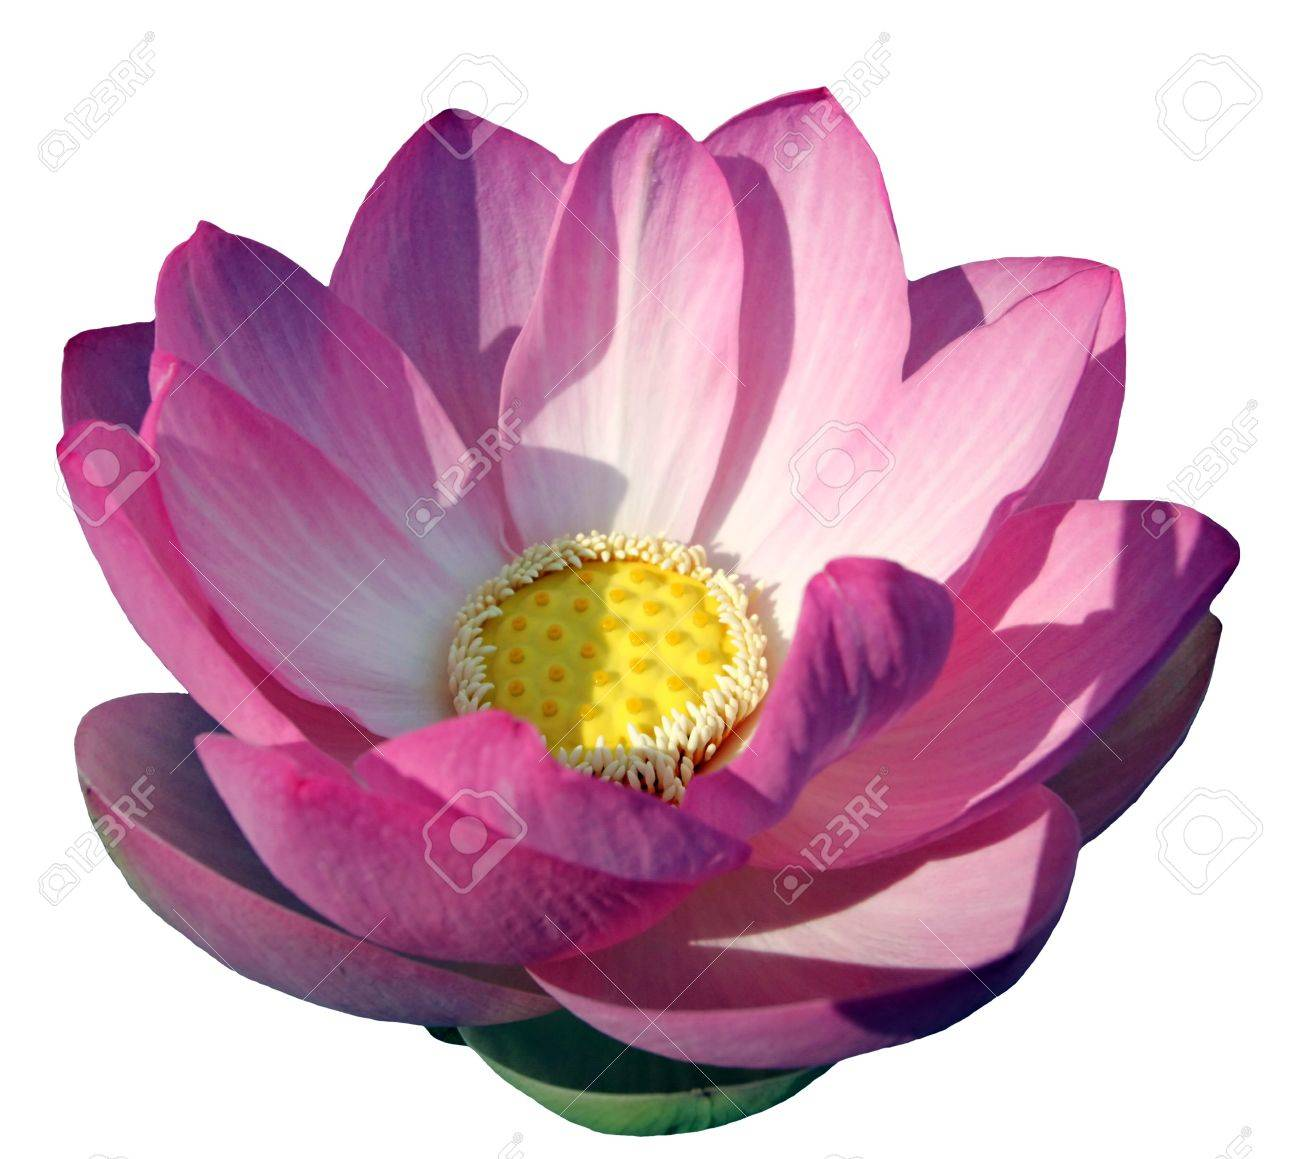 Close Up On Beautiful Water Lily Or Lotus Flower And Leaves In